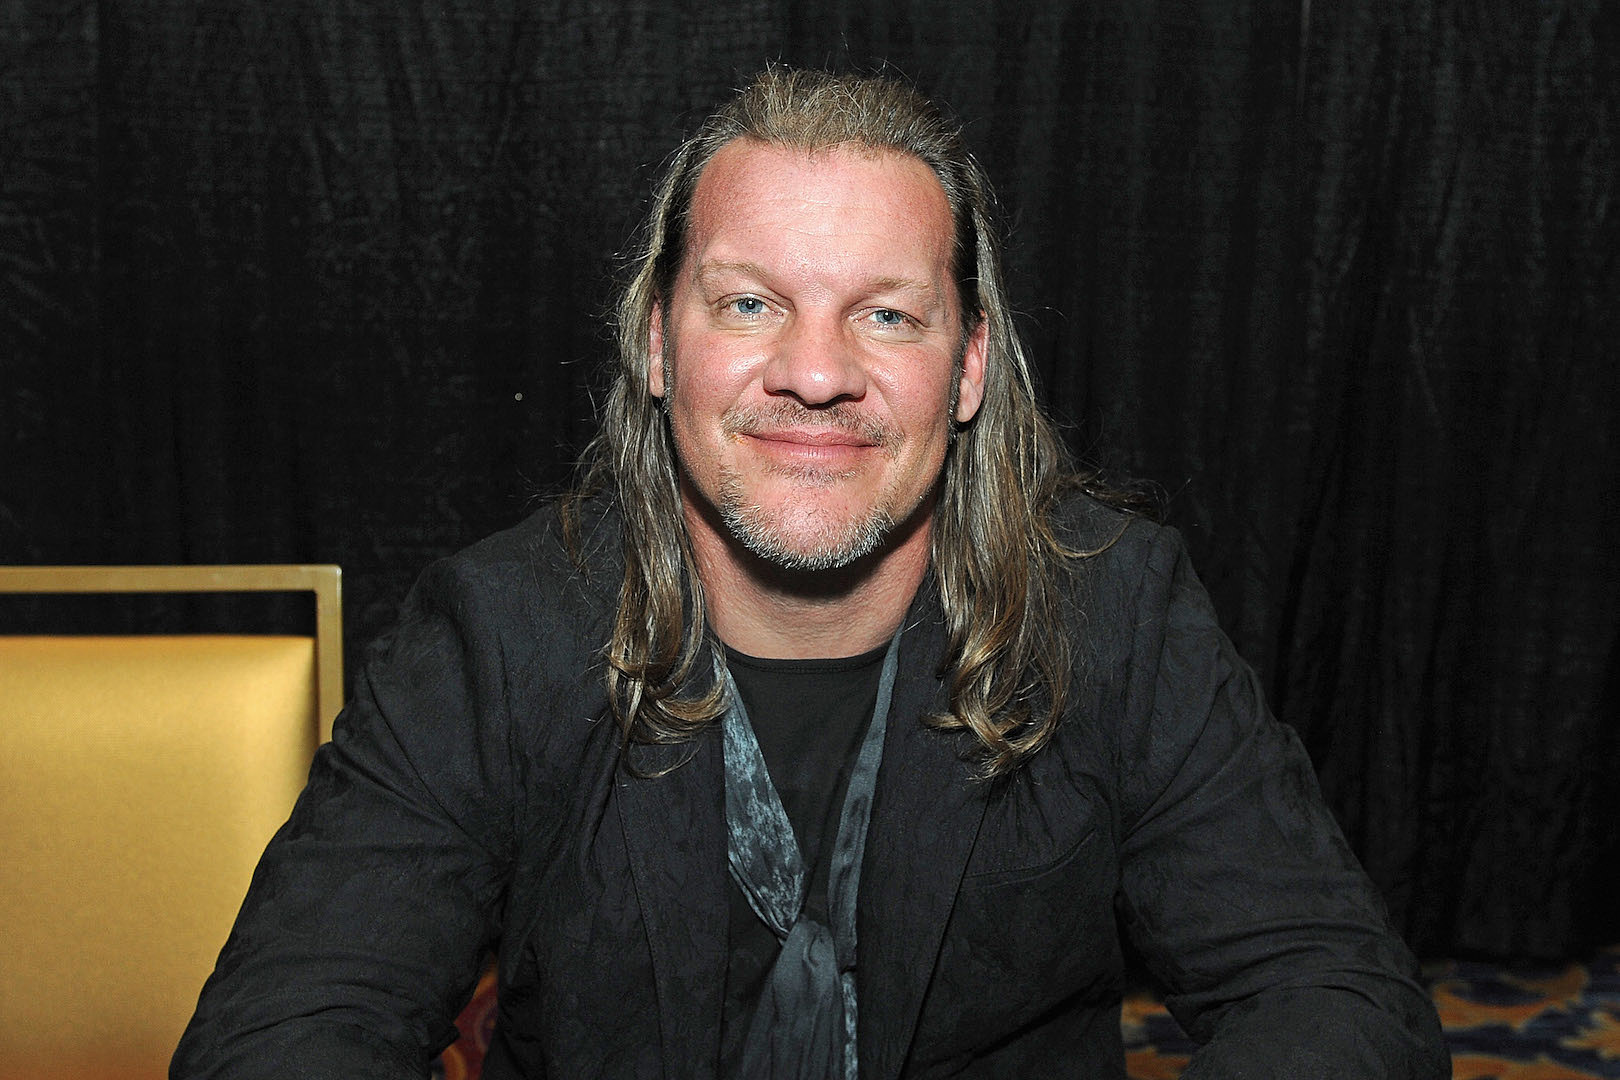 Chris Jericho Pummels Man for Severely Injuring Fozzy Drum Tech